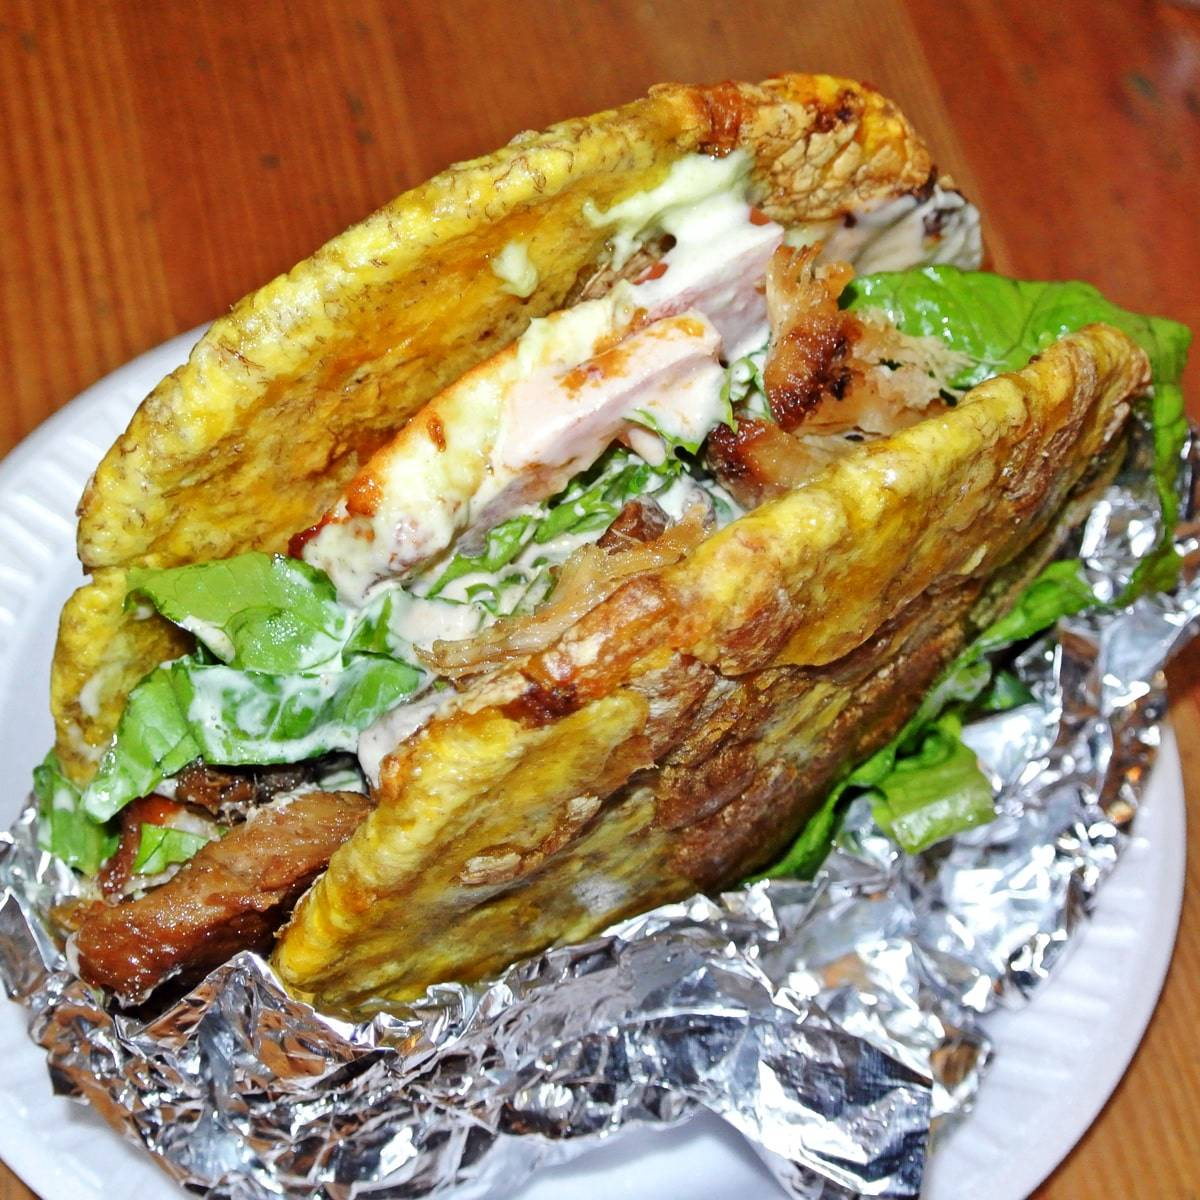 The Patacon Sandwich uses Plantains Instead of Bread at ...